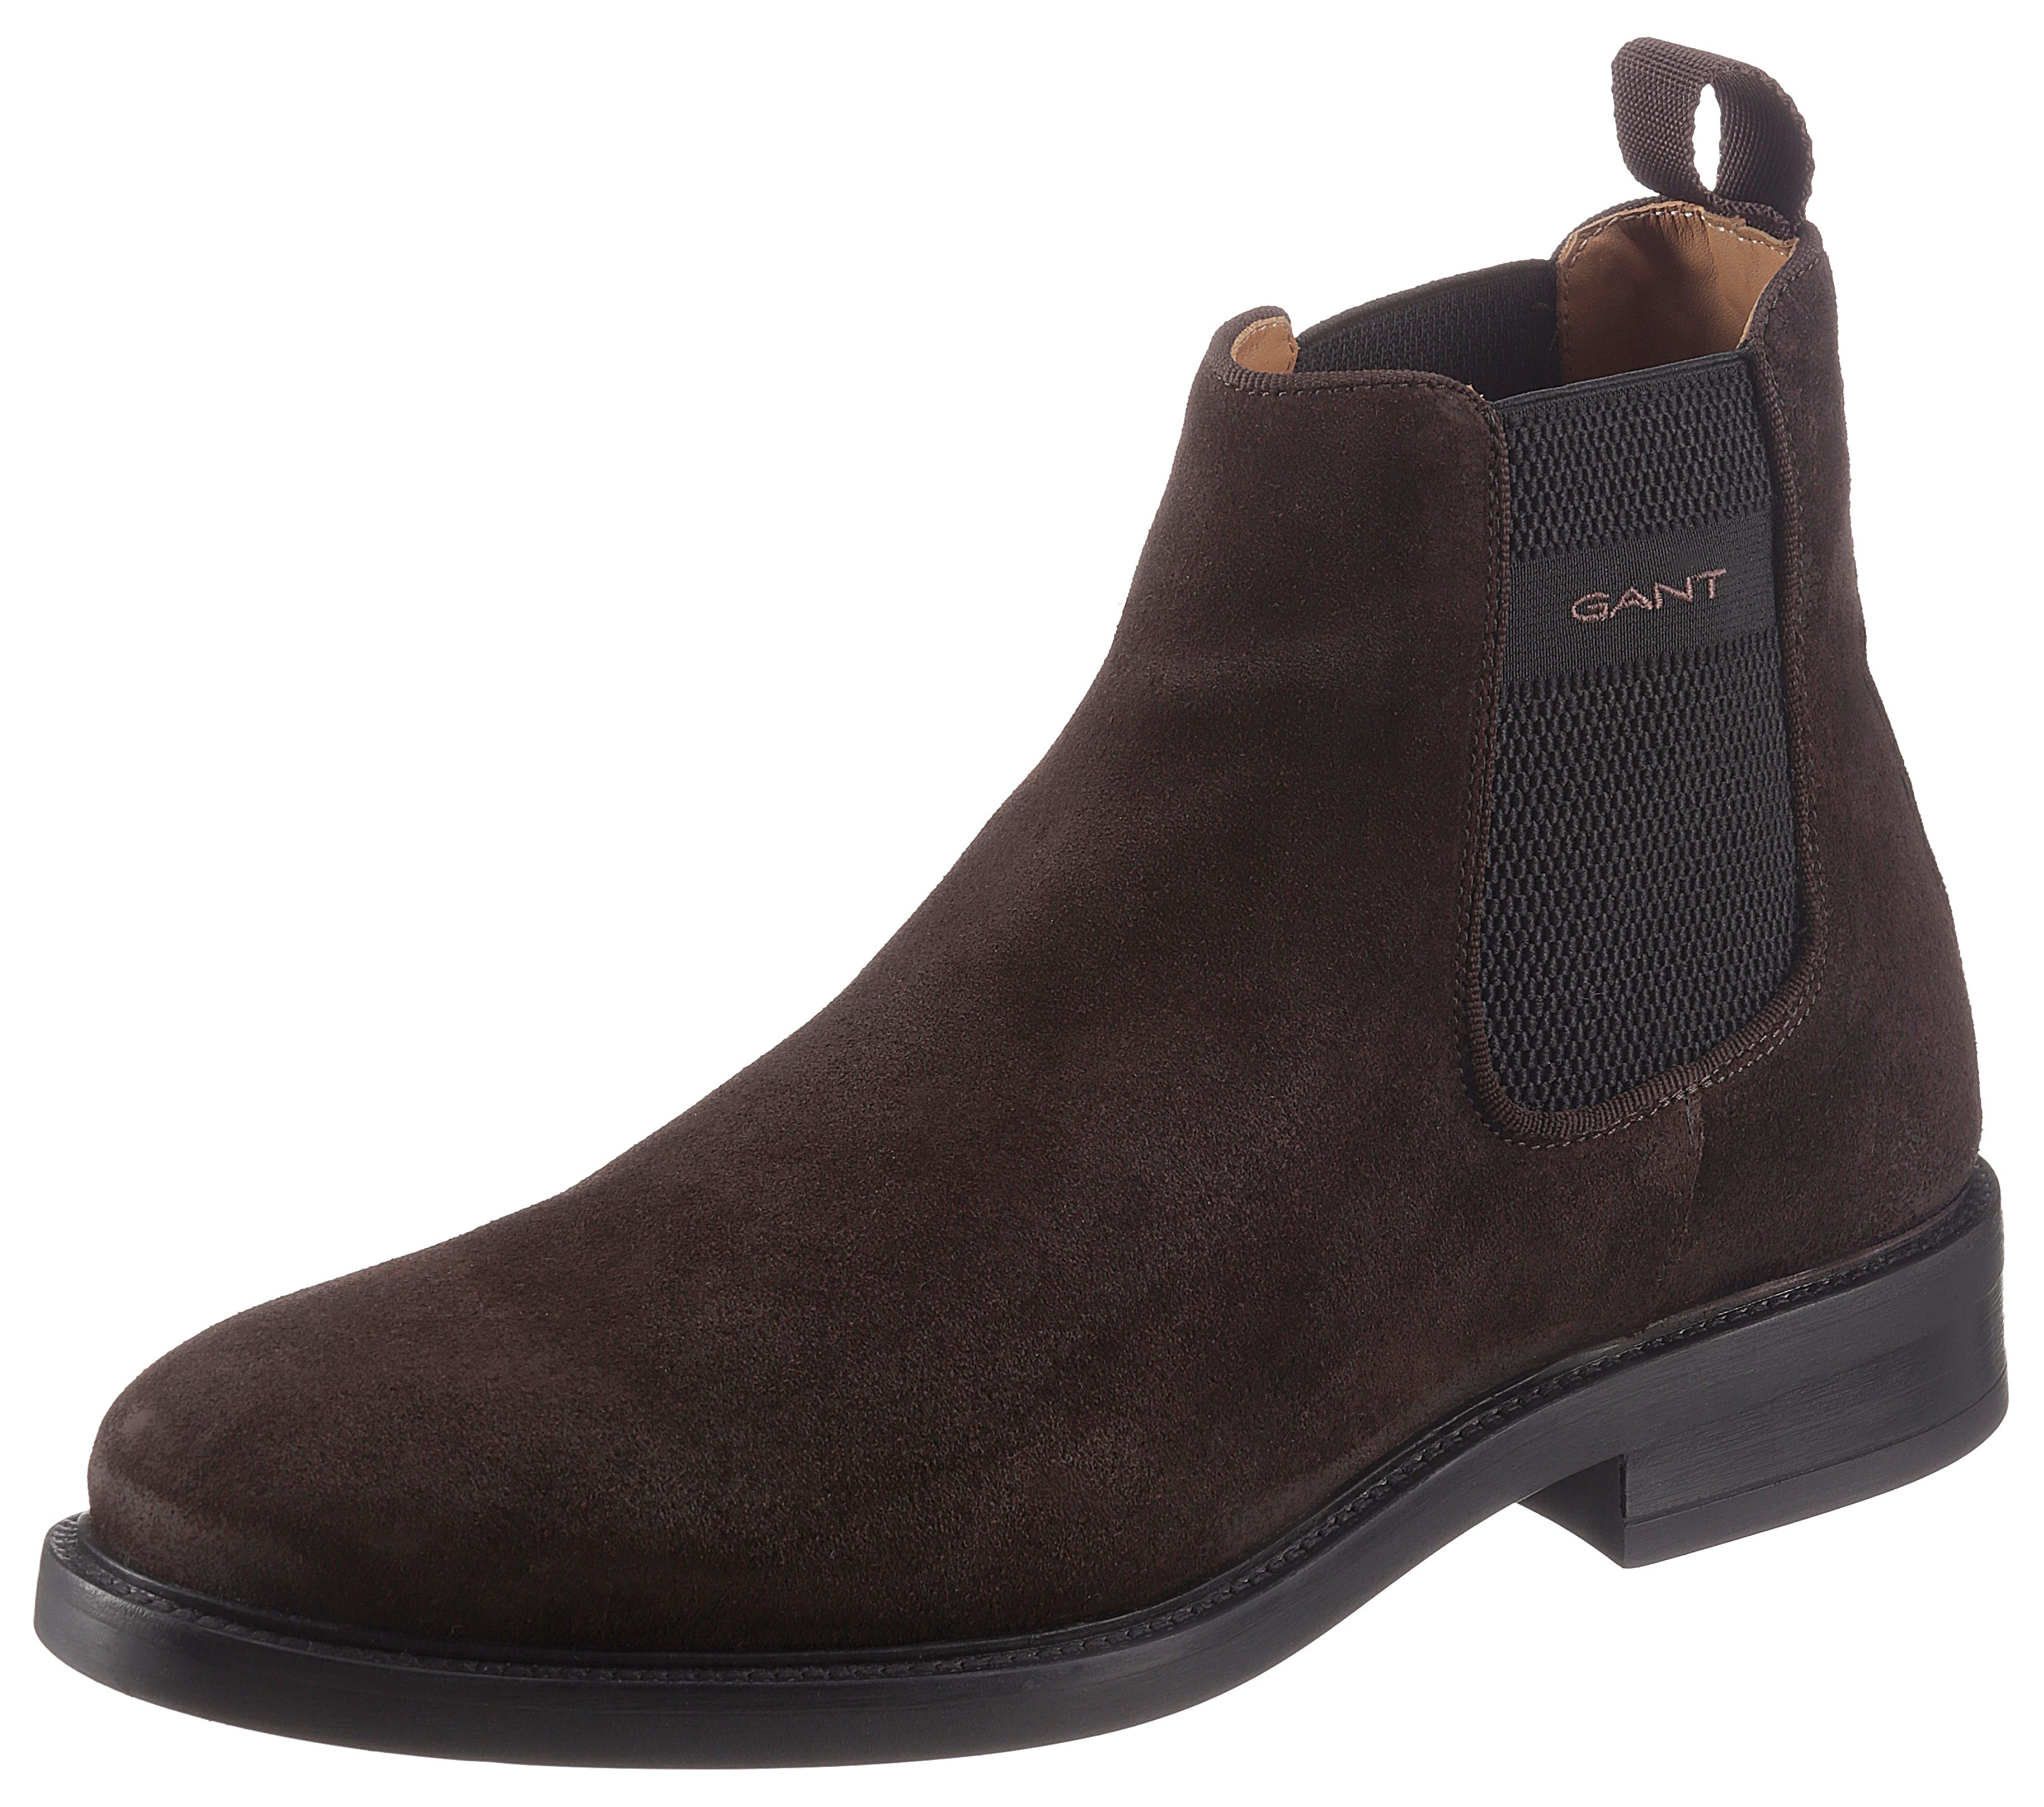 gant footwear -  Chelseaboots Flairville